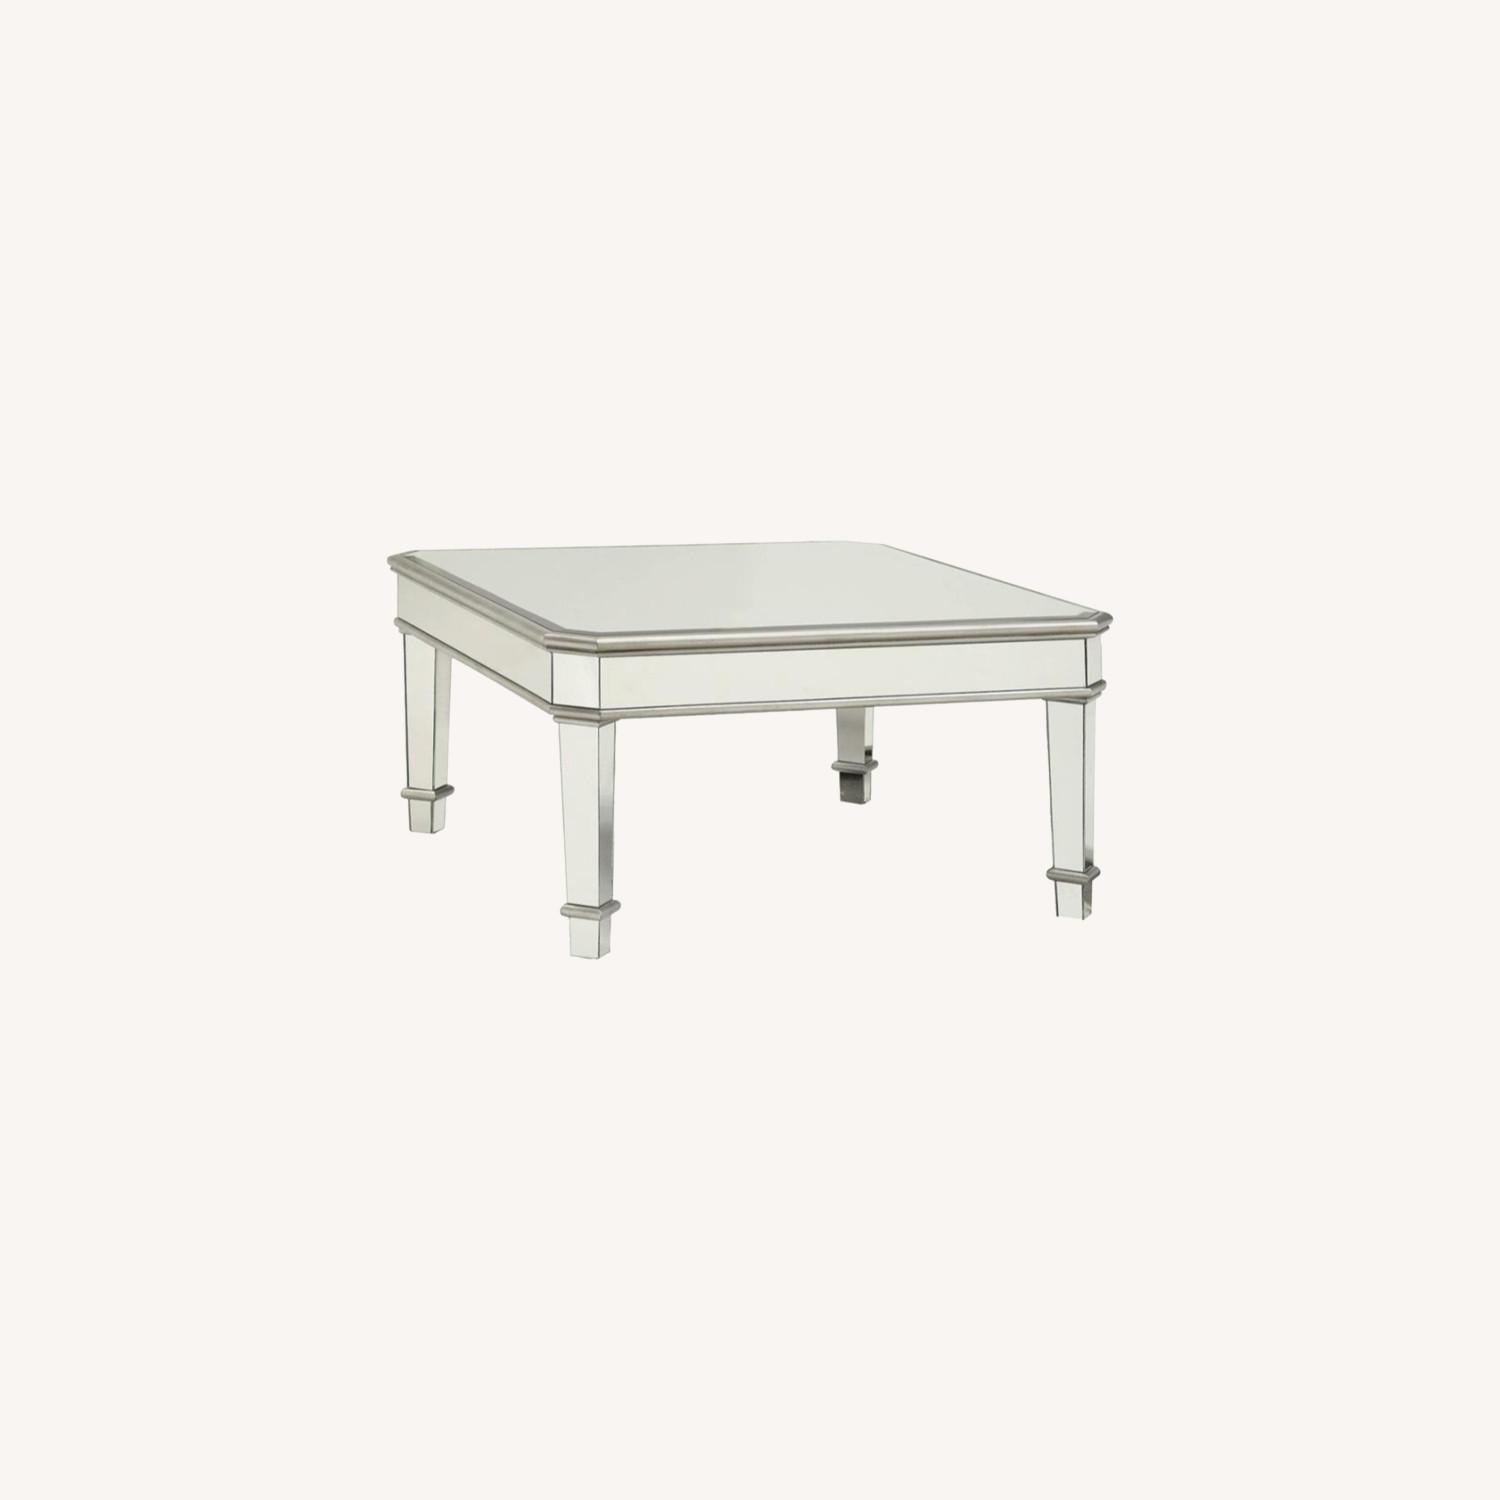 Coffee Table In Silver W/ Mirror Lined Surfaces - image-3